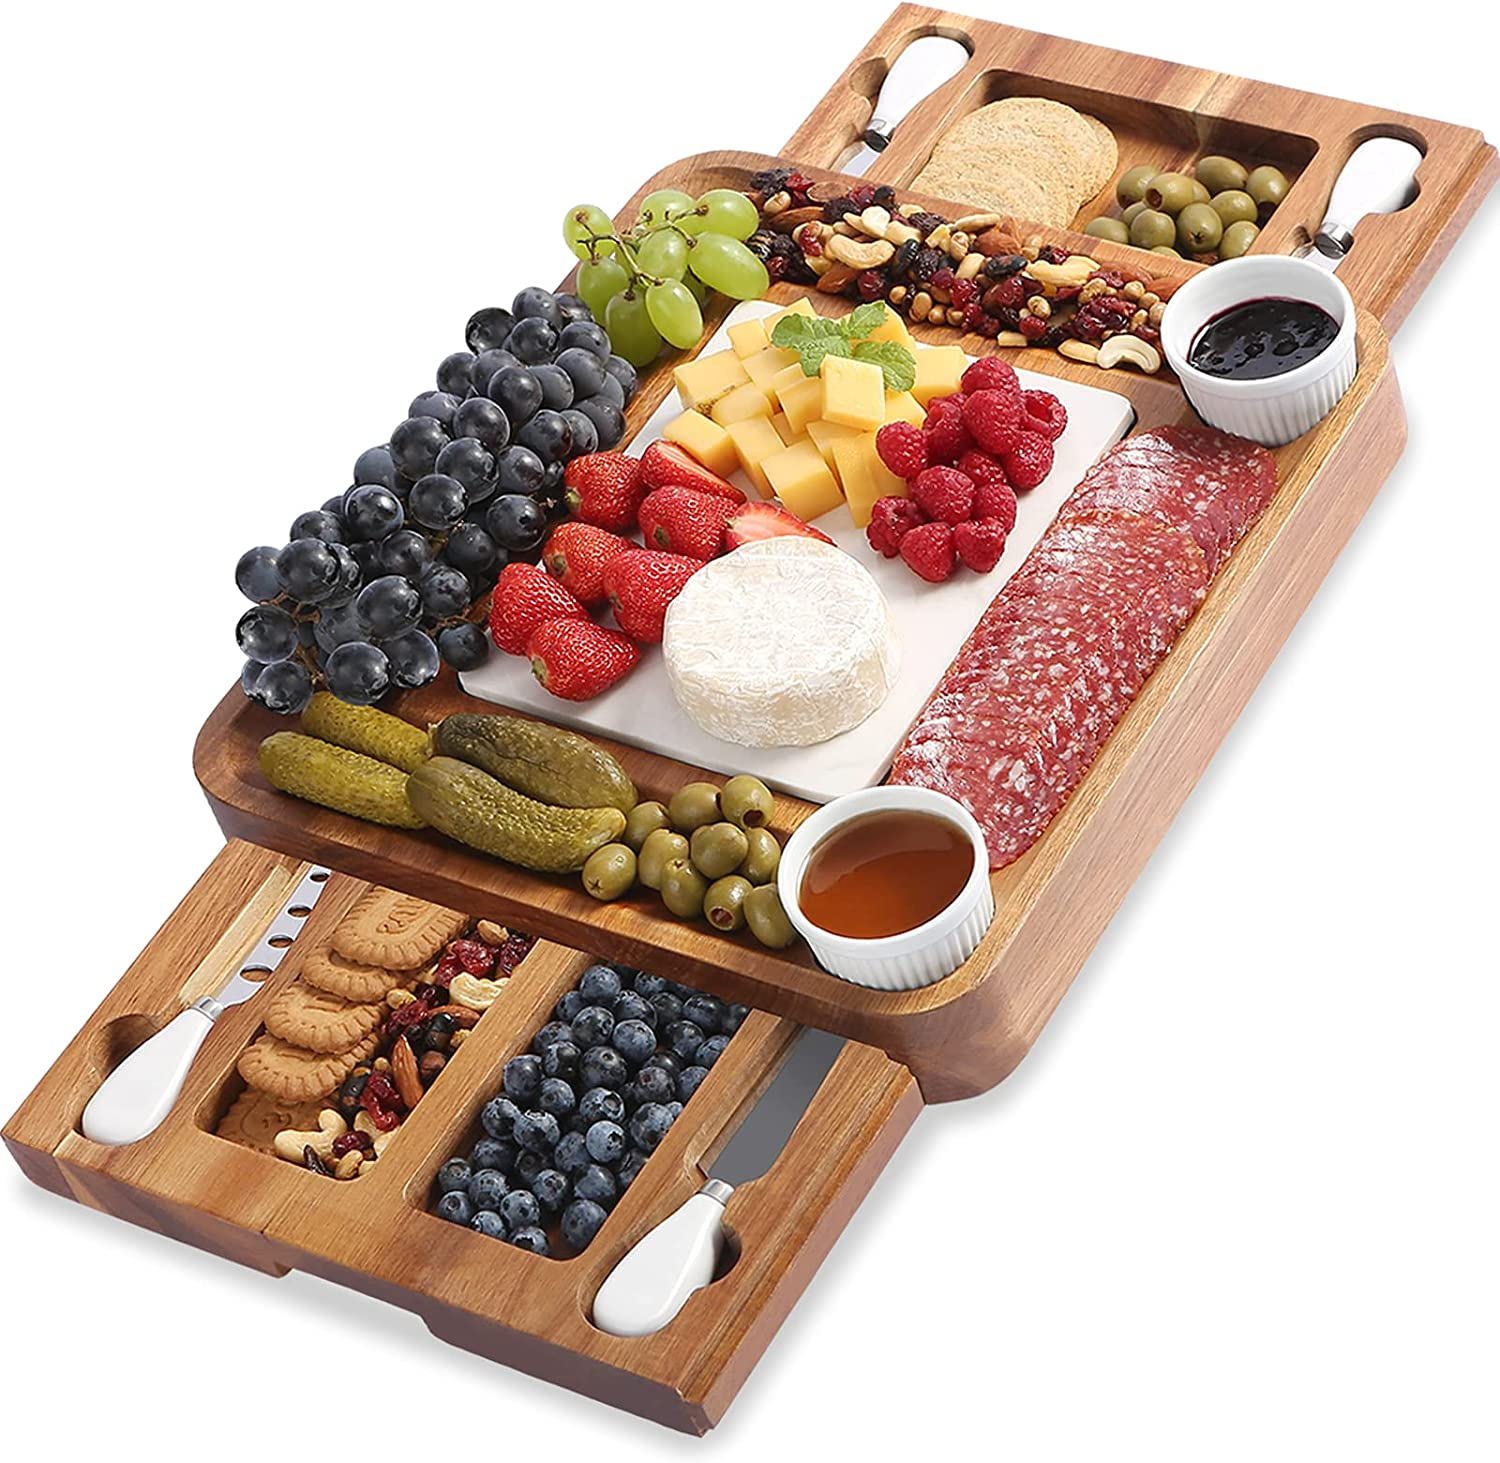 ABELL Cheese Board and shipfree Knife Ser Dealing full price reduction Charcuterie Acacia Boards Sets